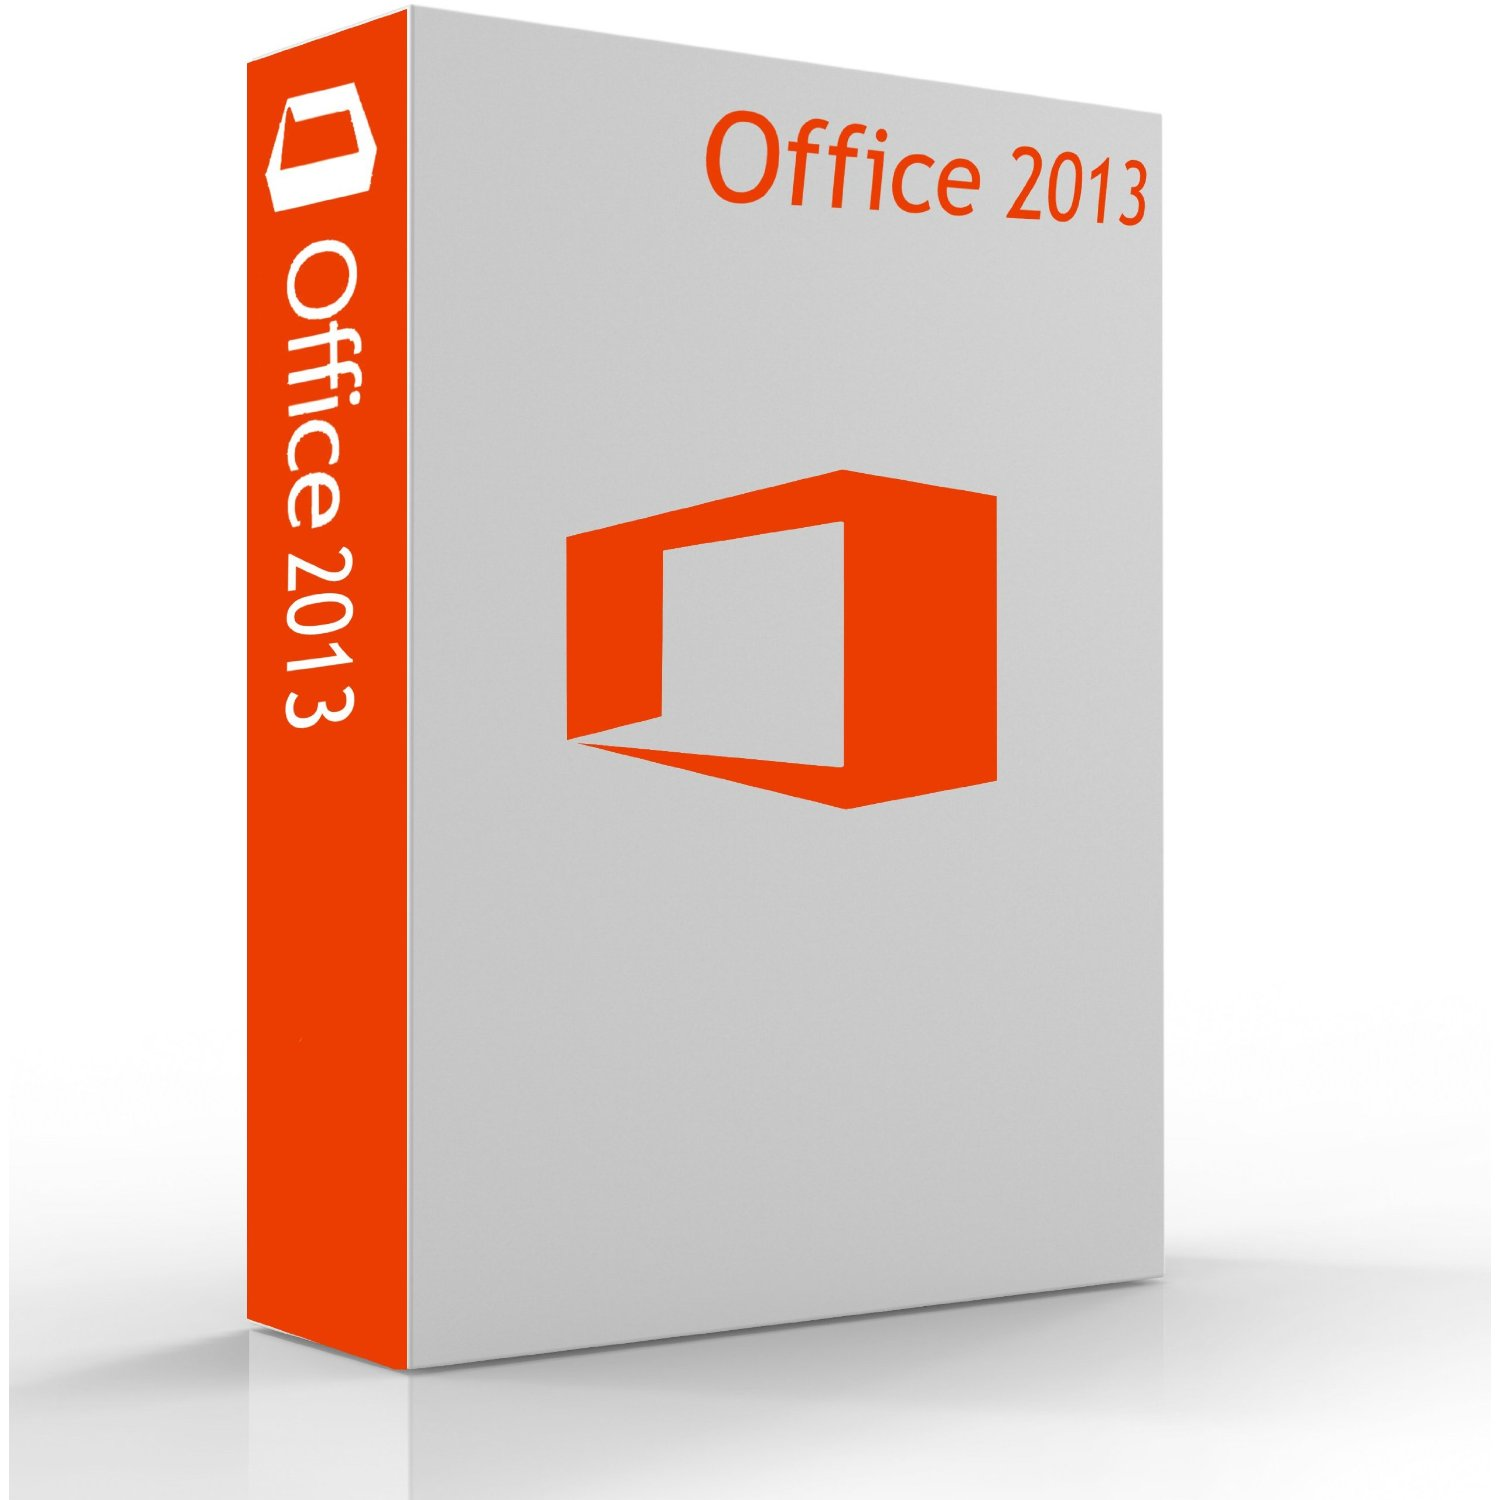 Microsoft Office 2013 Product Key,Generator Crack Full Download!-daily2k